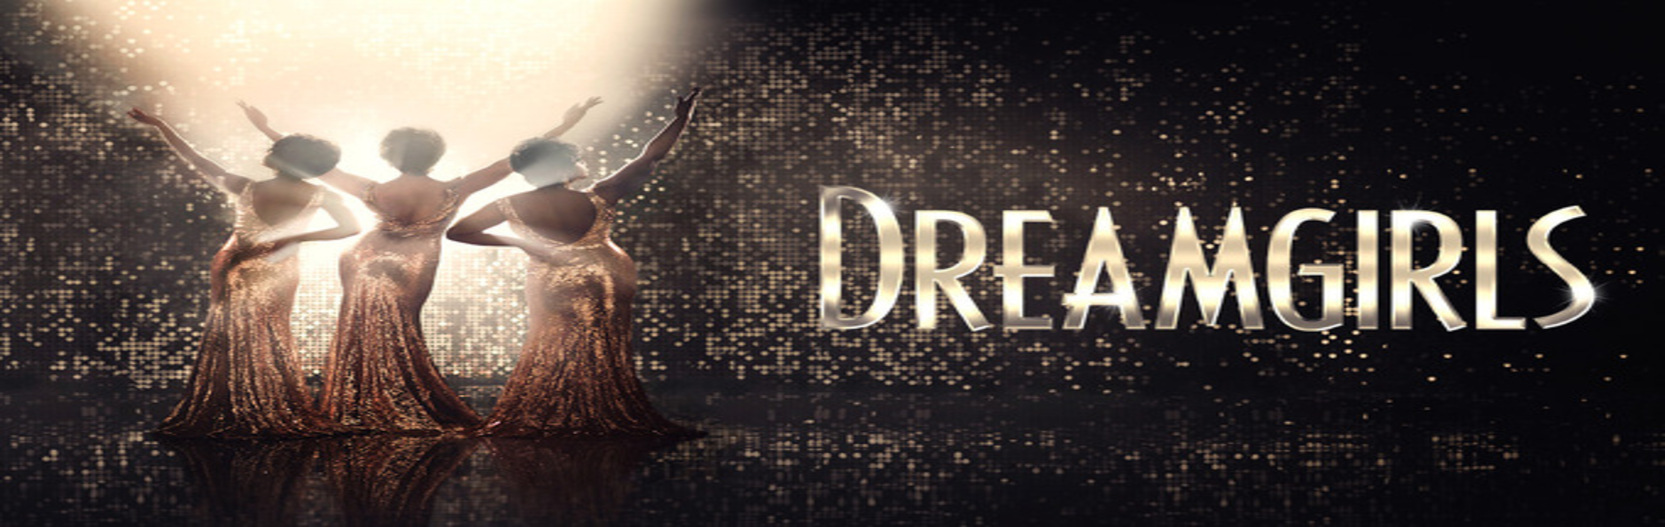 dreamgirls-1